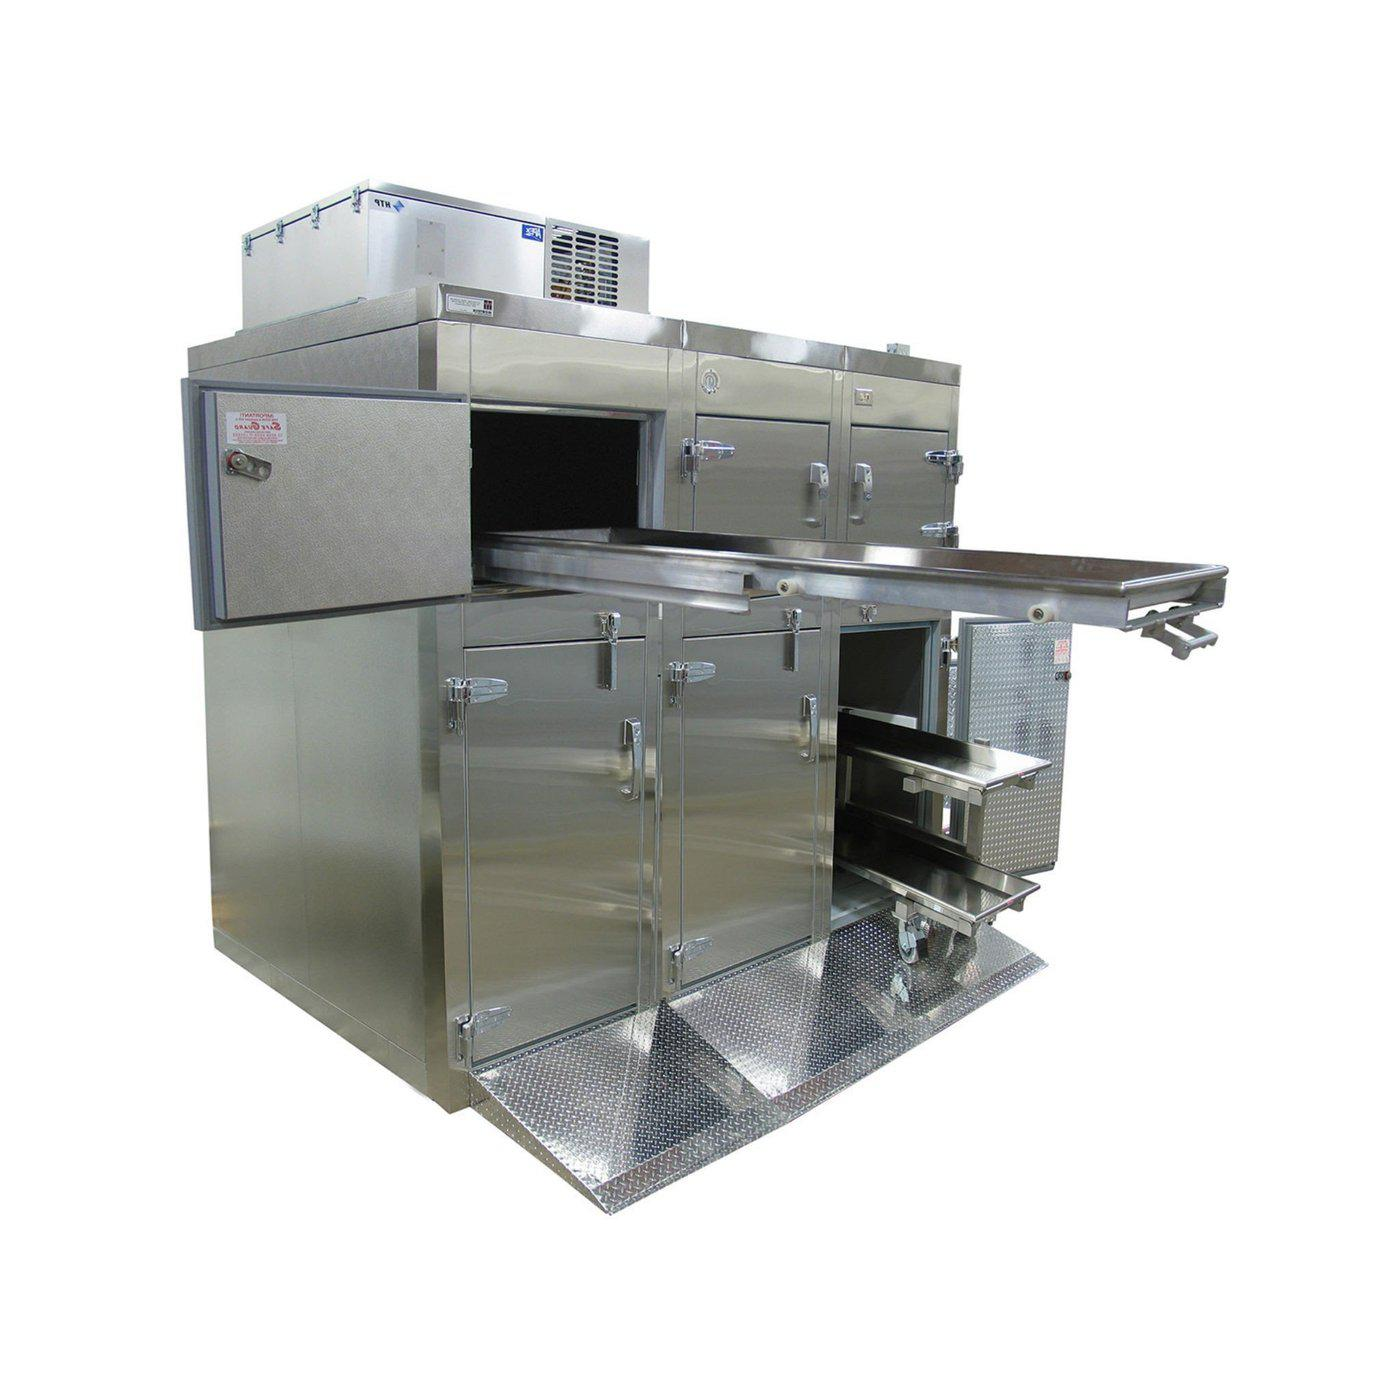 Six or Nine Body Tiered Refrigerator-Refrigeration-Mortech Manufacturing Company Inc. Quality Stainless Steel Autopsy, Morgue, Funeral Home, Necropsy, Veterinary / Anatomy, Dissection Equipment and Accessories